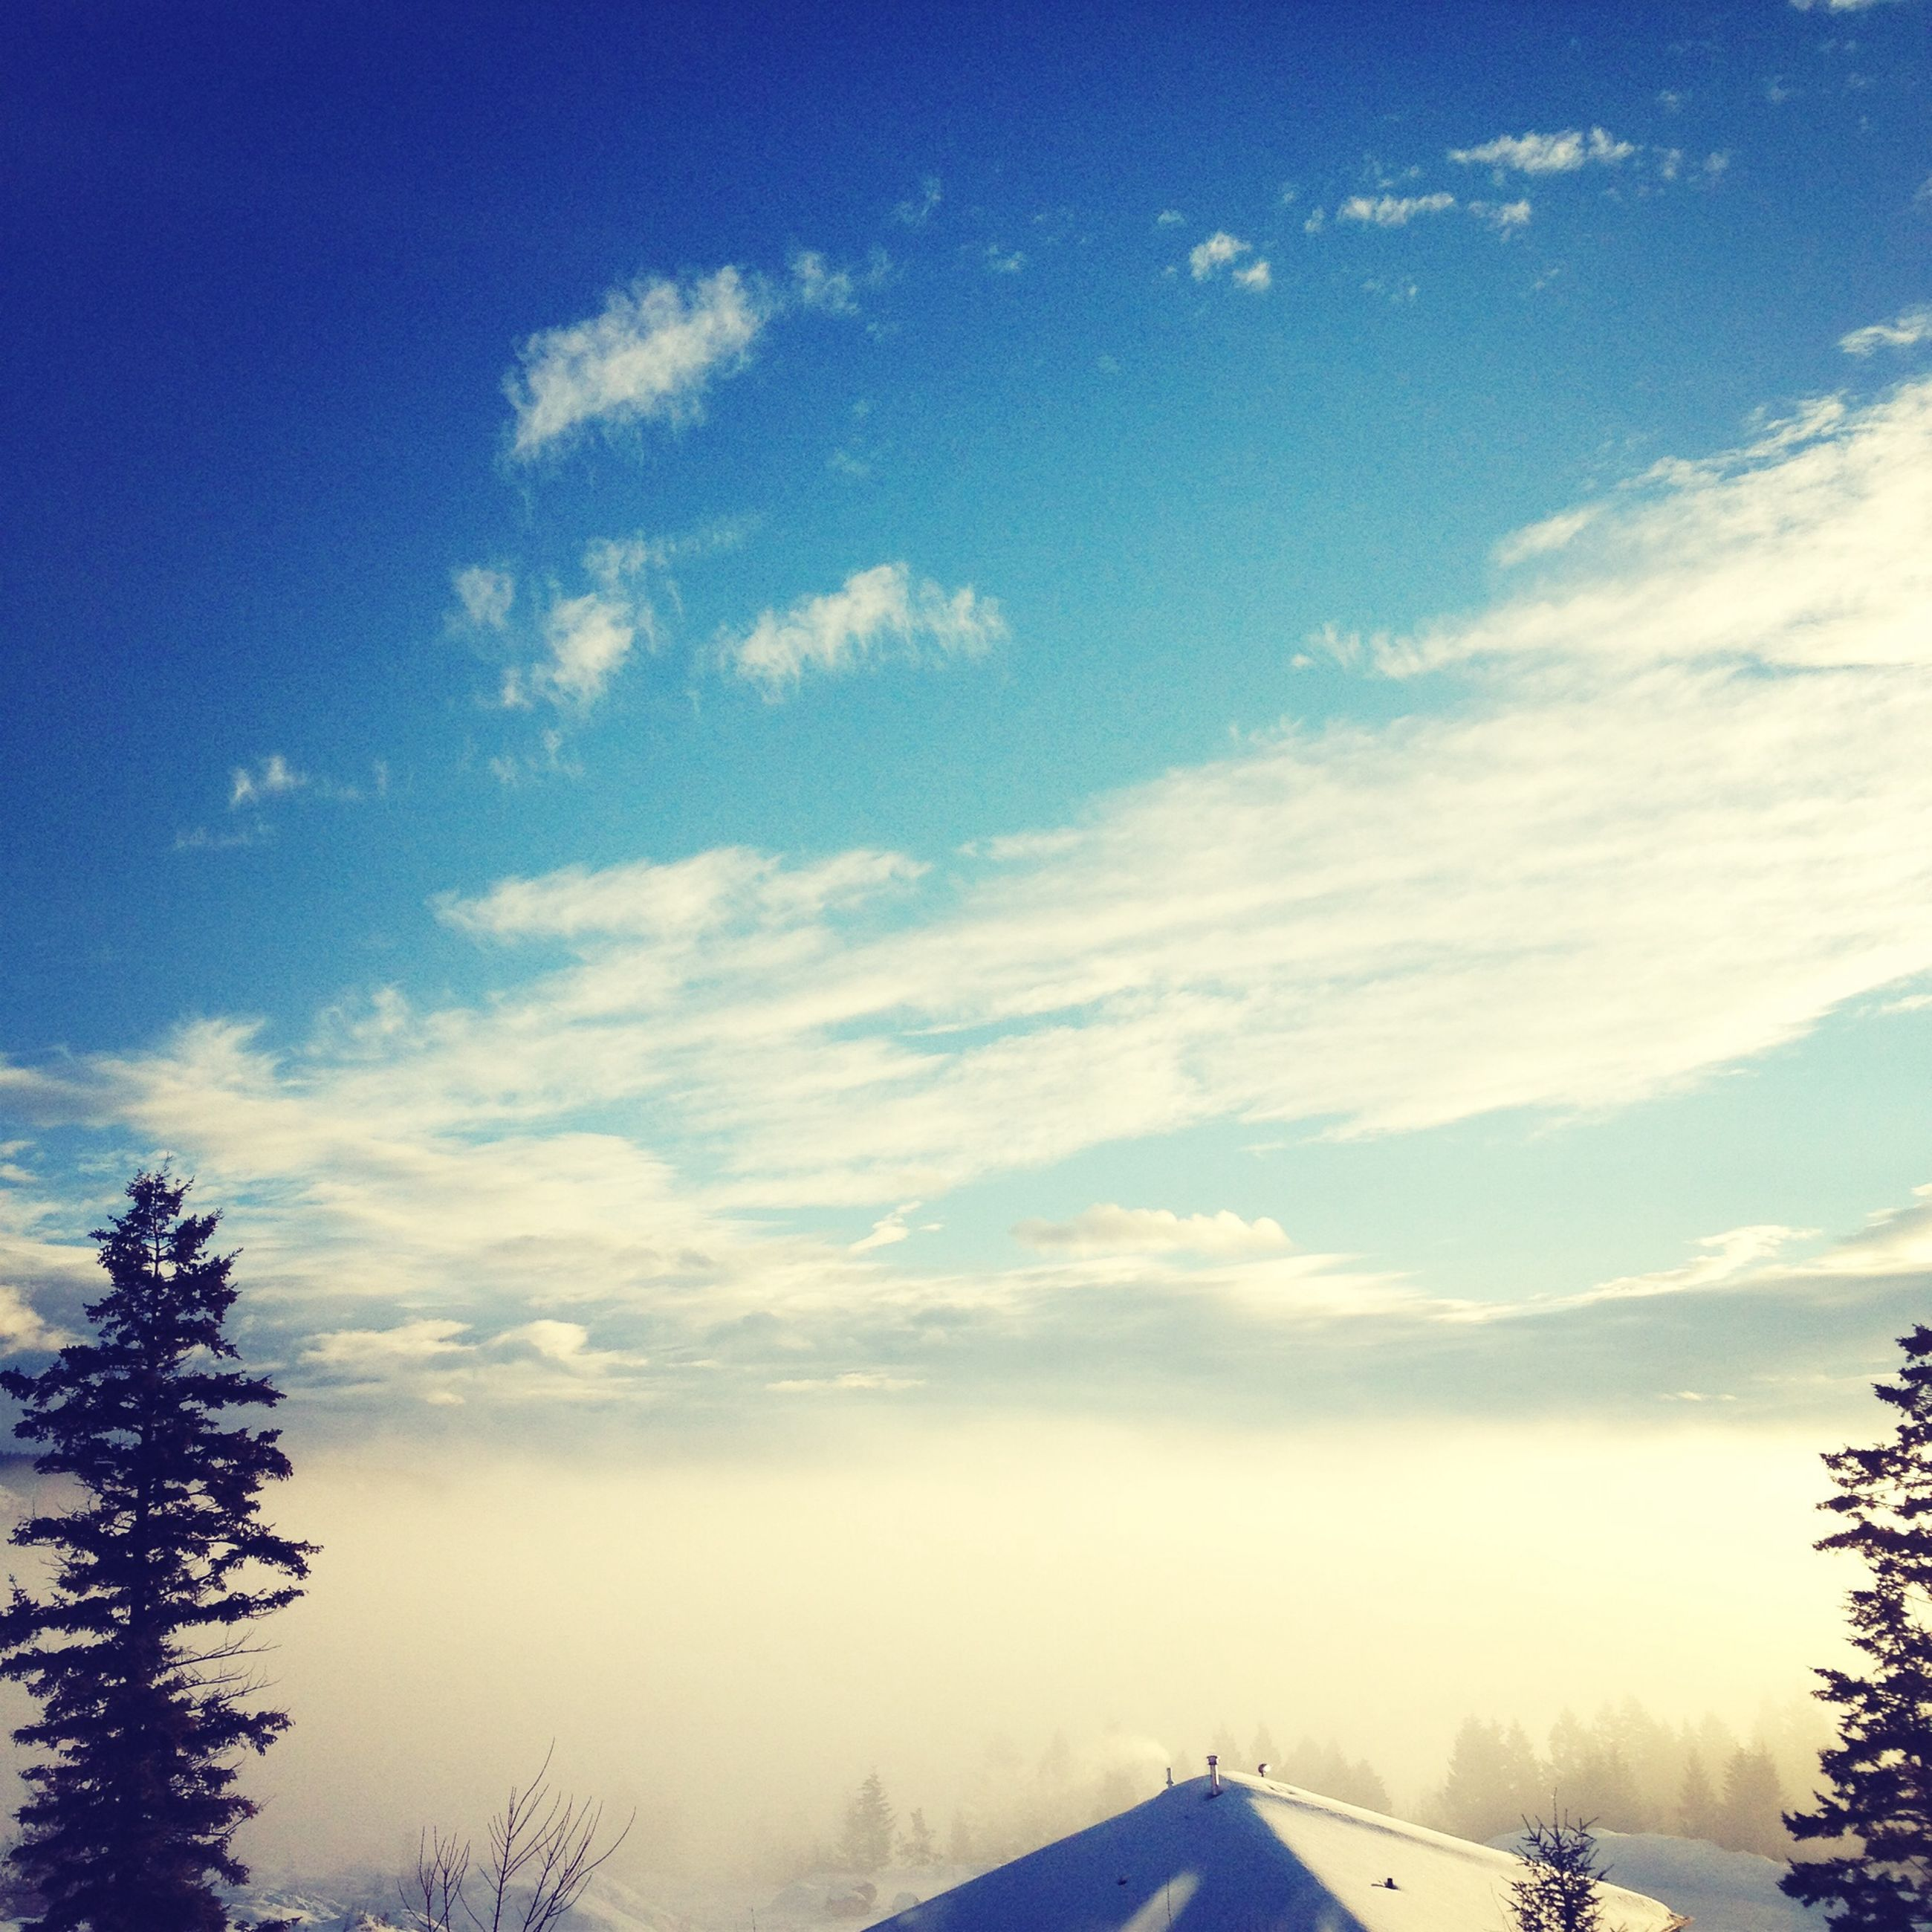 sky, snow, winter, cold temperature, tranquil scene, tranquility, beauty in nature, scenics, landscape, cloud - sky, nature, weather, tree, blue, season, cloud, field, covering, non-urban scene, no people